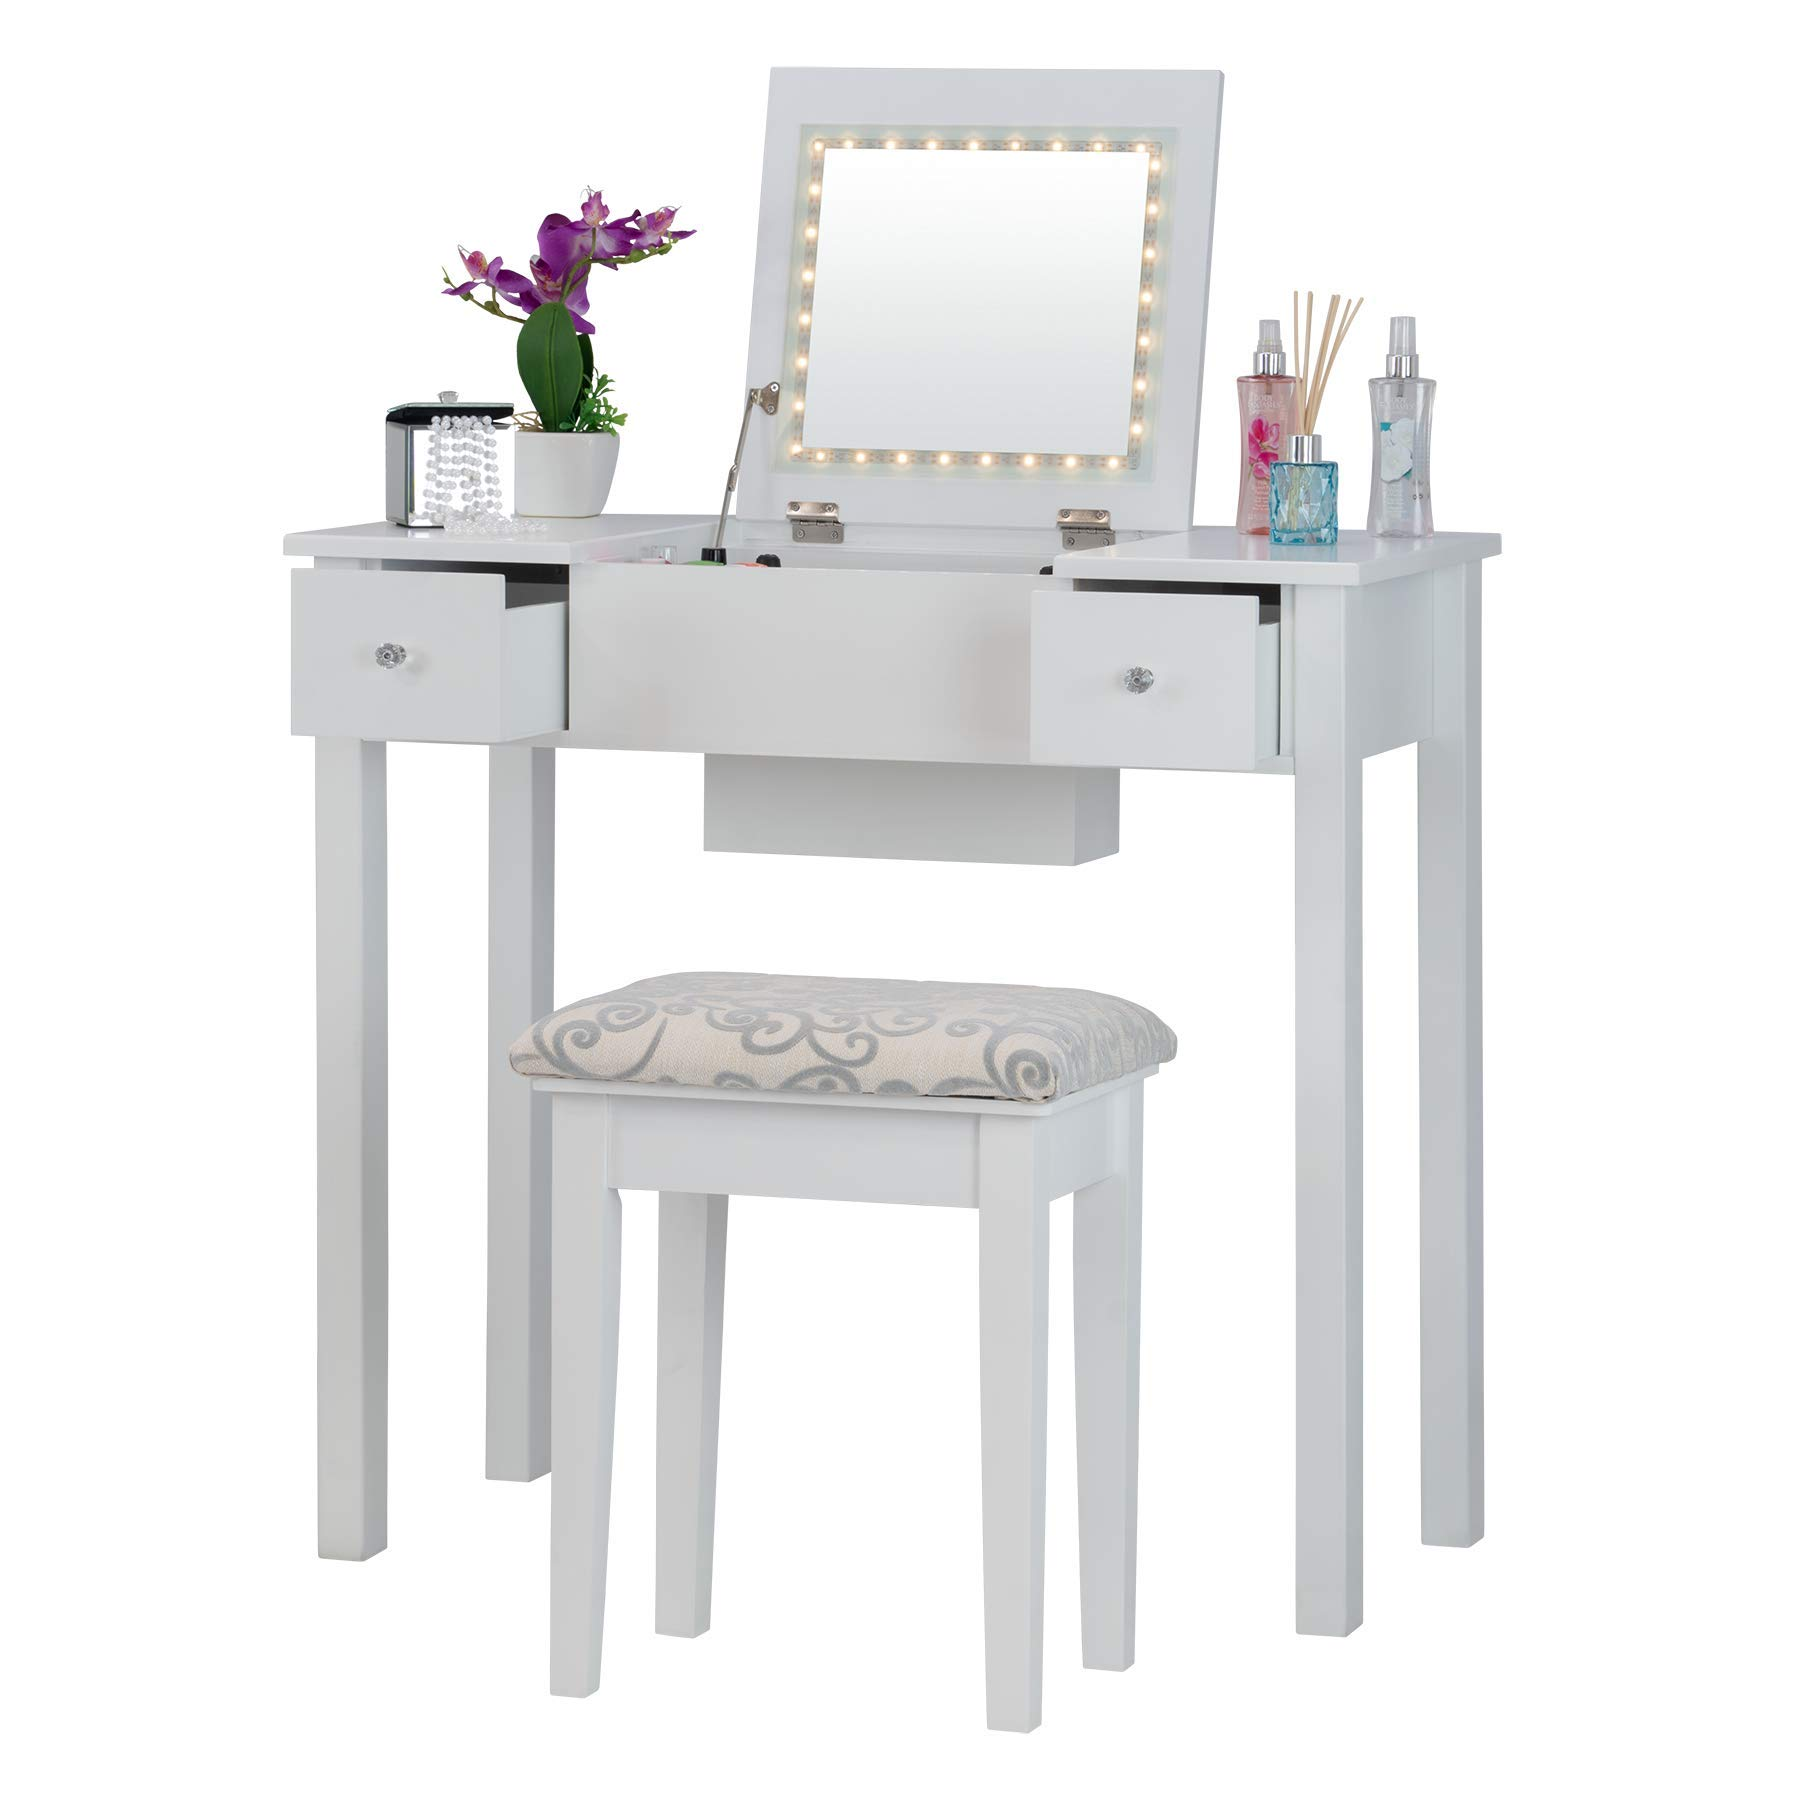 Fineboard FB-VT23-W Dressing Mirror LED Lights and Stool Makeup Vanity Table, White